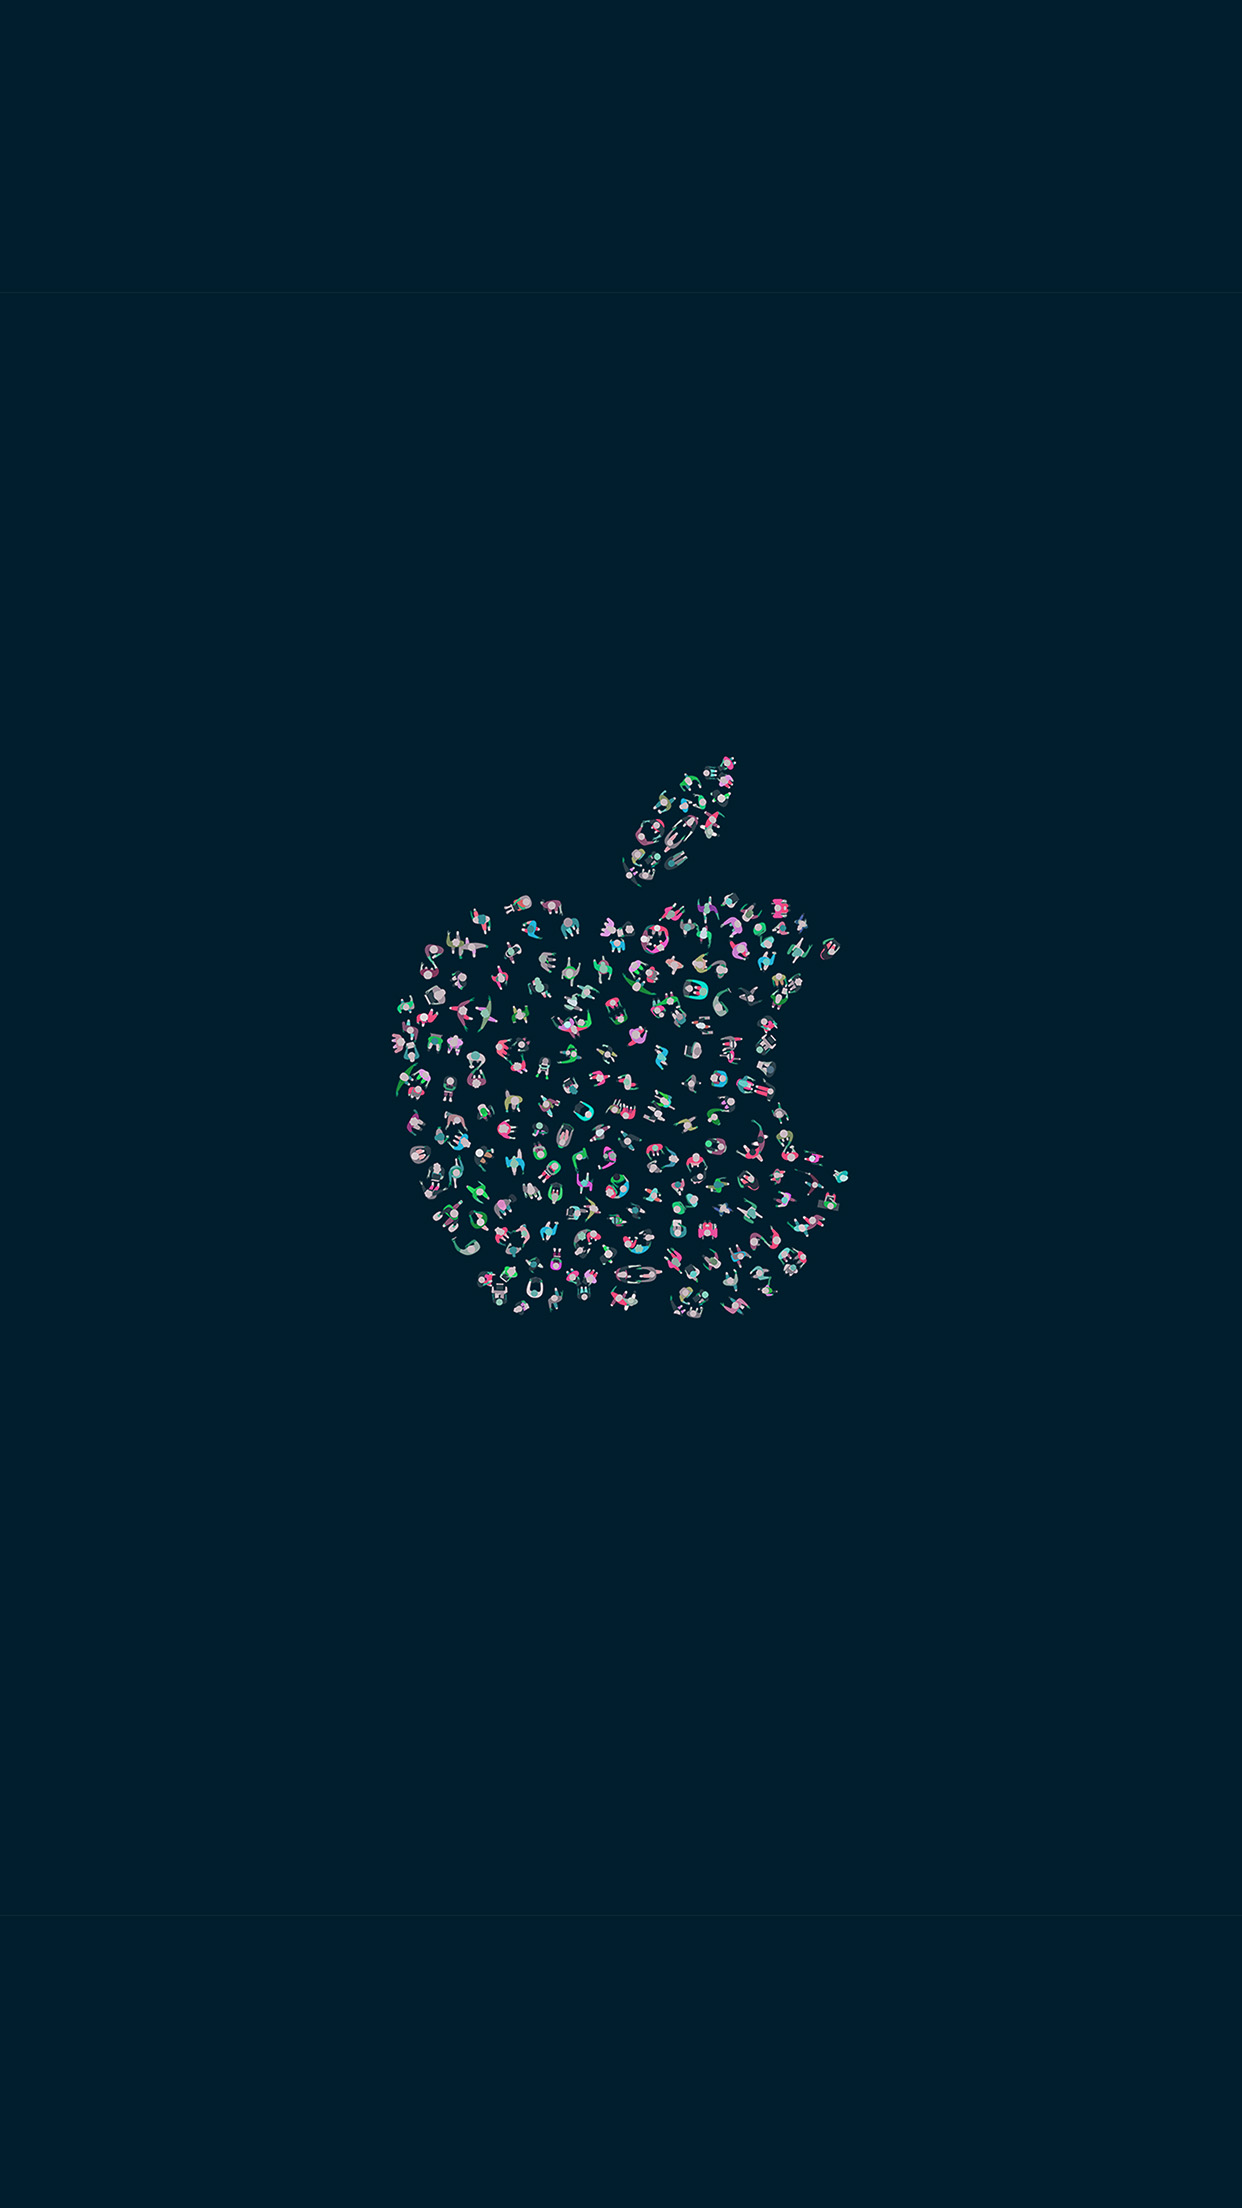 Iphone7paperscom Iphone7 Wallpaper Az74 Wwdc Apple Logo Dark